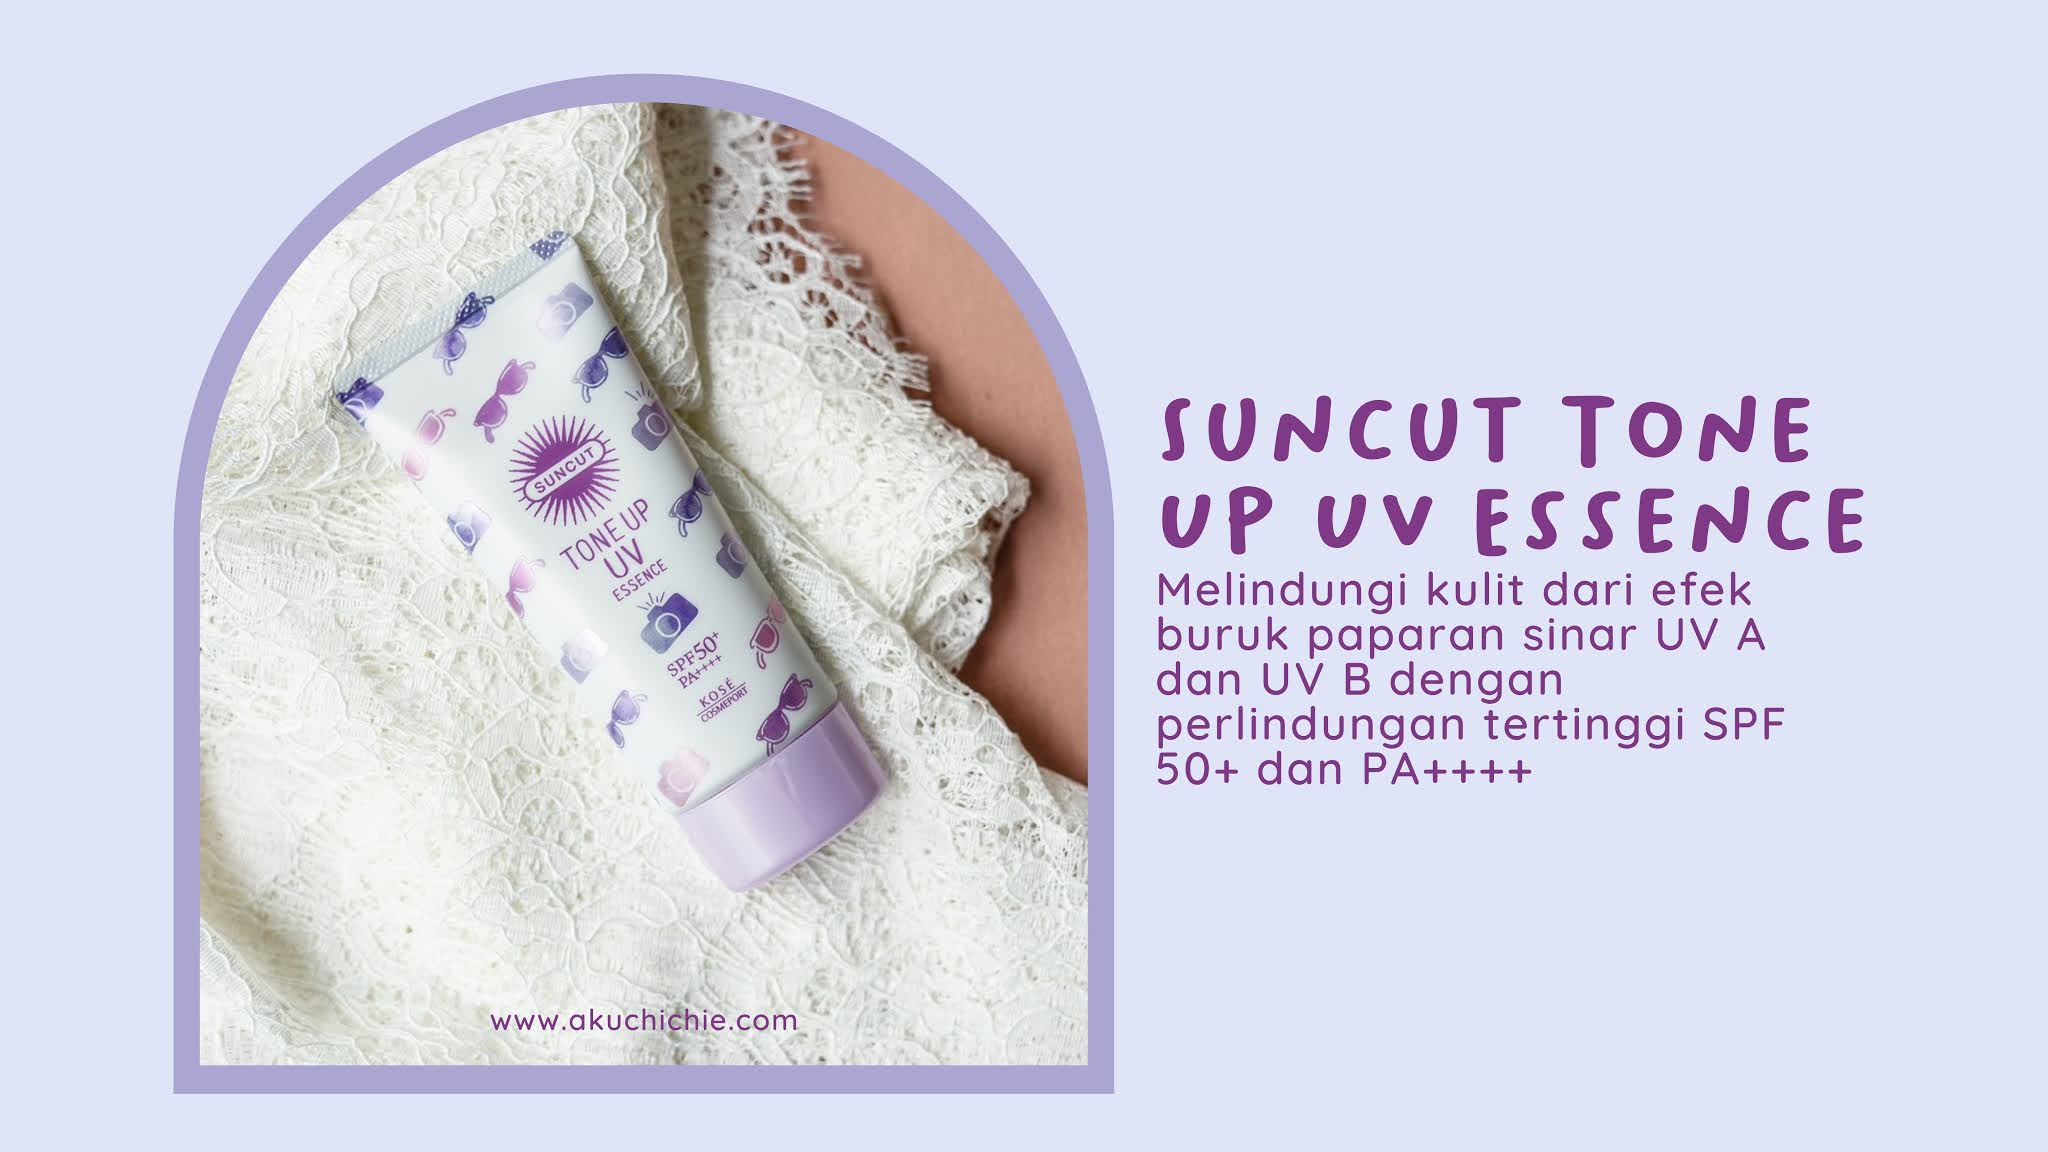 Kose Cosmeport Suncut Tone Up UV Essence